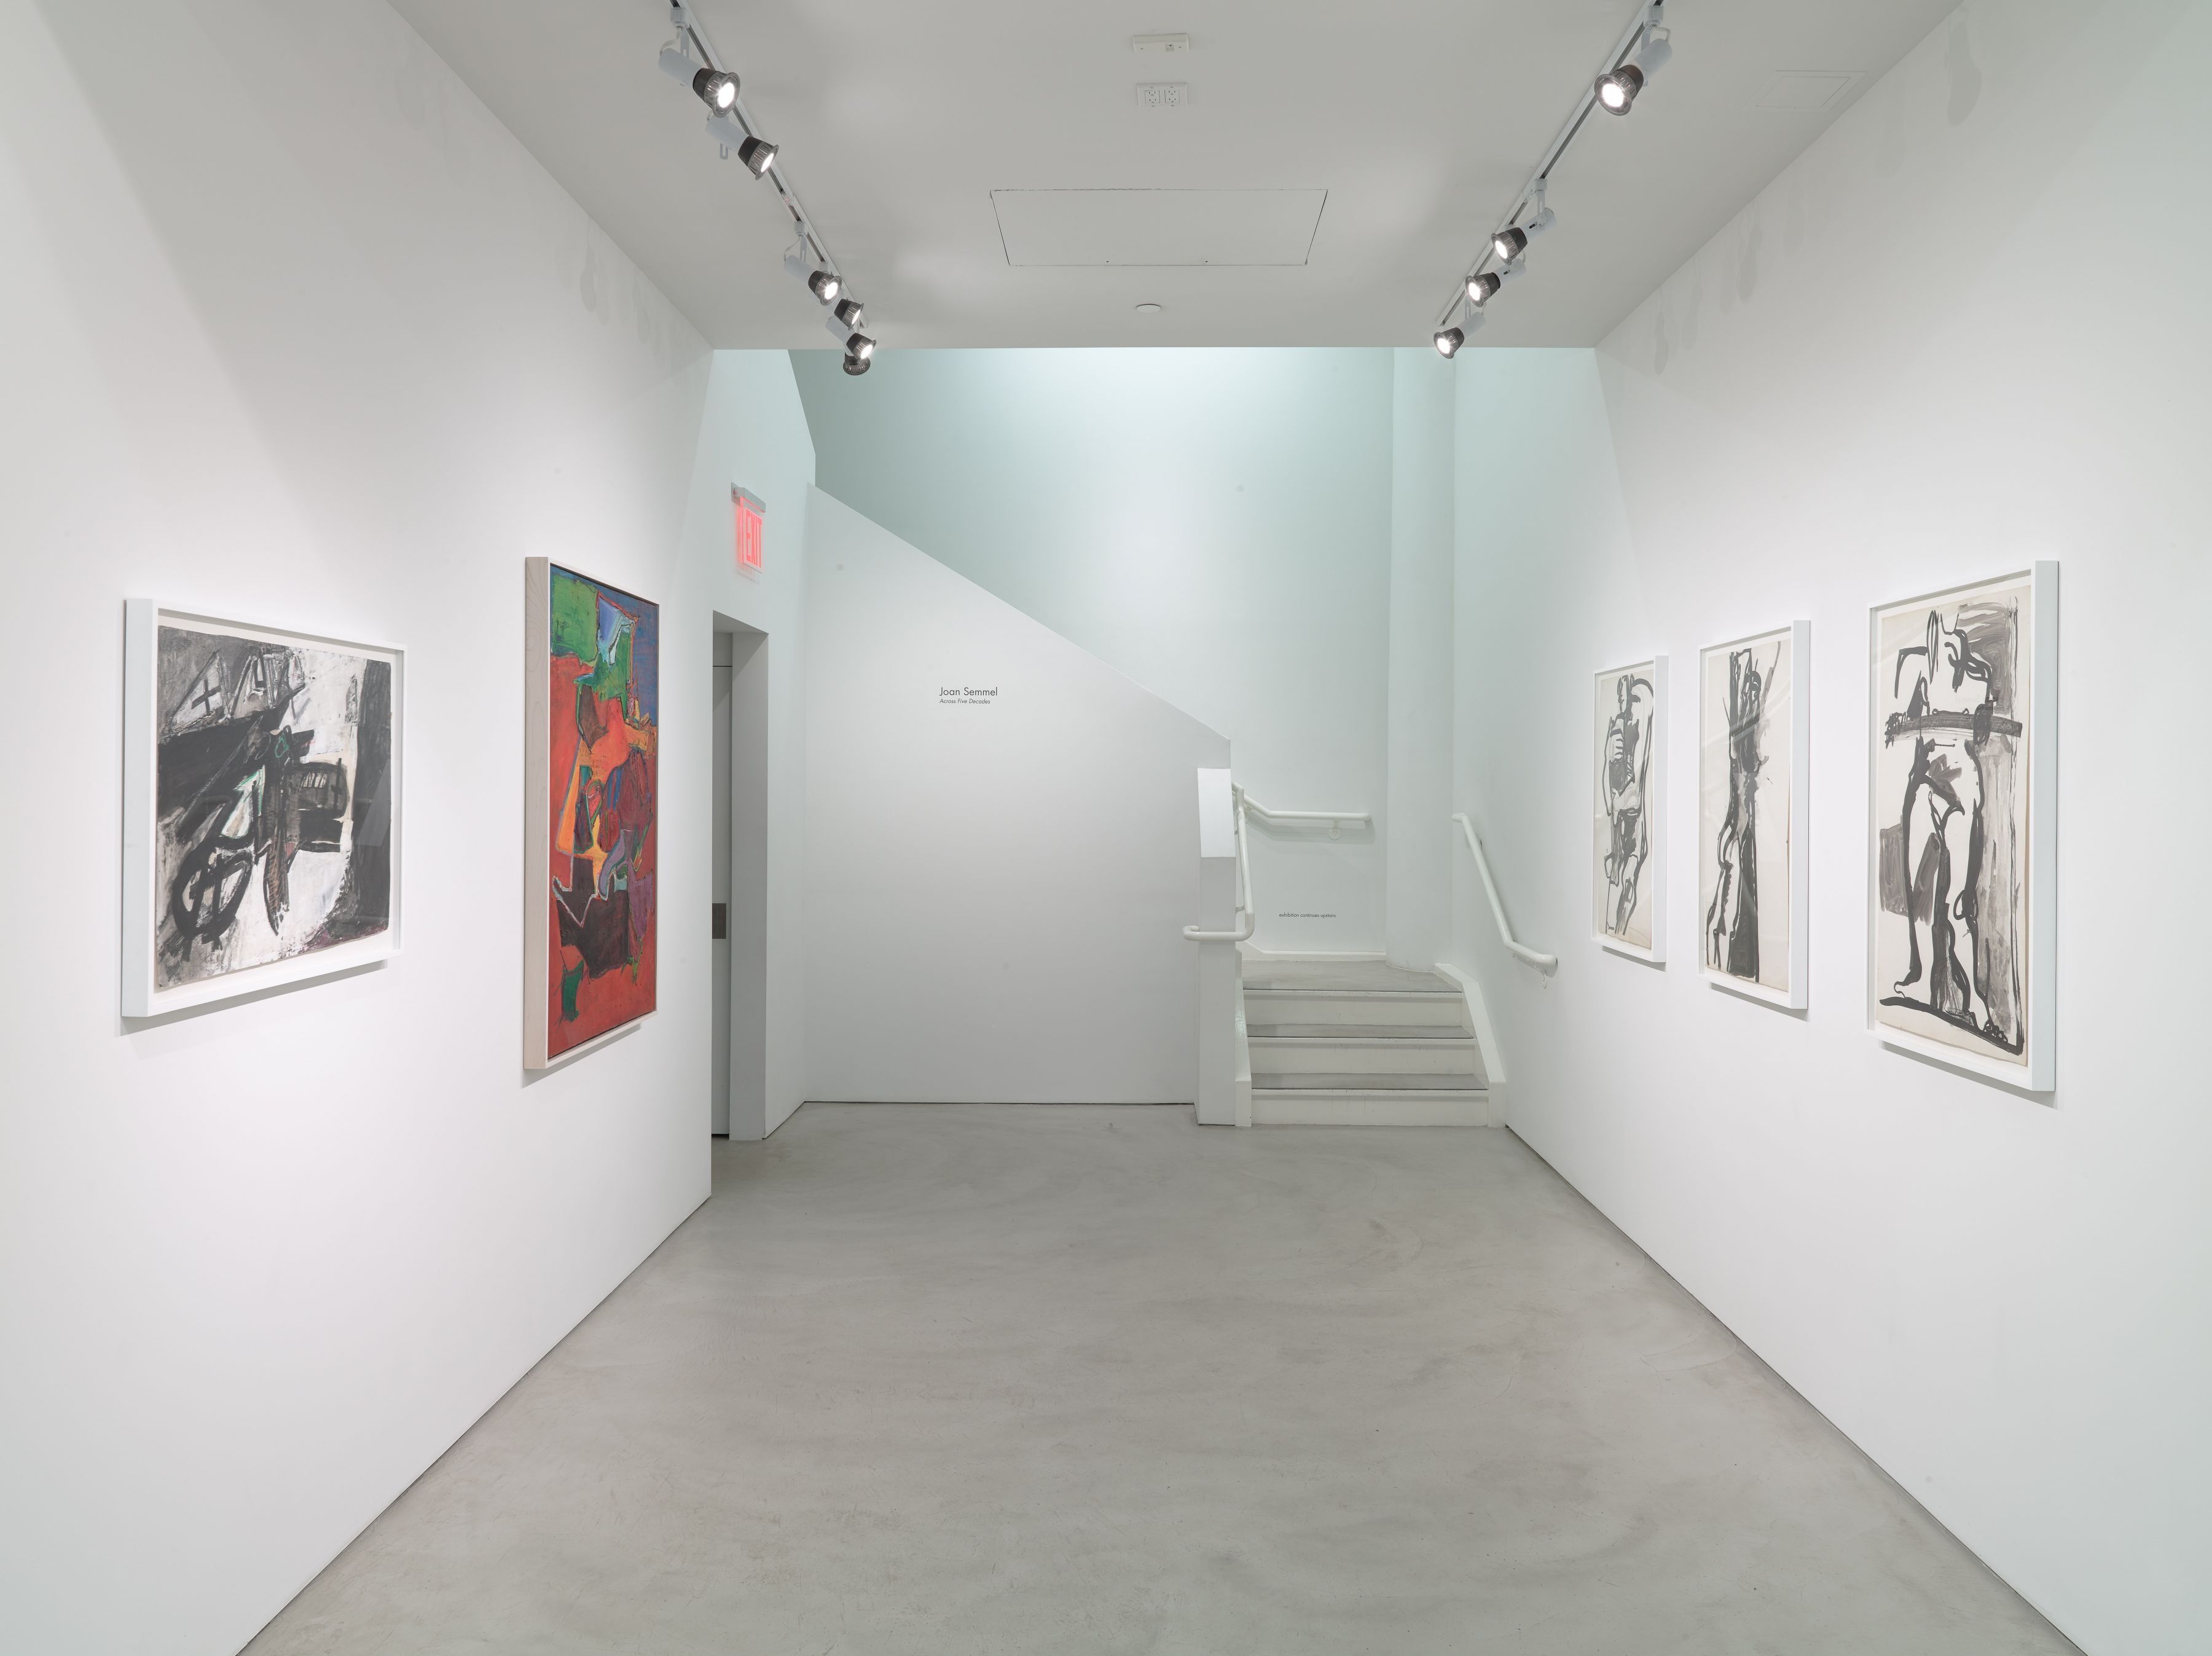 Joan Semmel: Across Five Decades, Installation View, Alexander Gray Associates, 2015